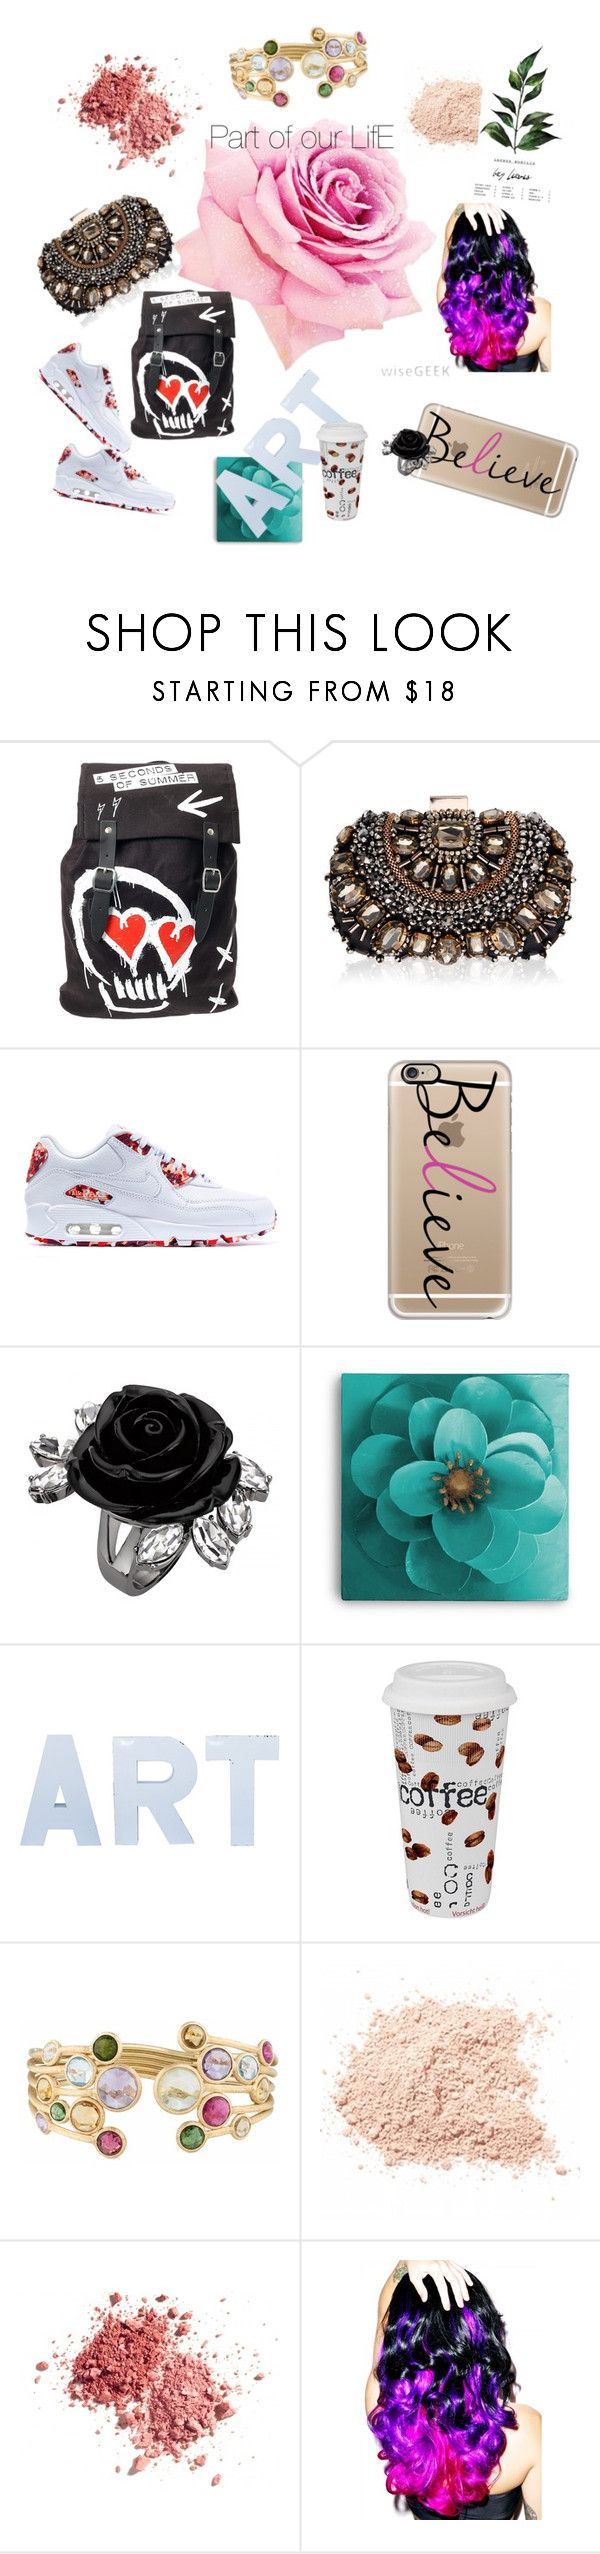 """☆Part° of °Our`- lifE♡"" by takinagaaoi ❤ liked on Polyvore featuring beauty, Lipsy, NIKE, Casetify, Stray Dog Designs, Könitz, Marco Bicego and Leg Avenue"